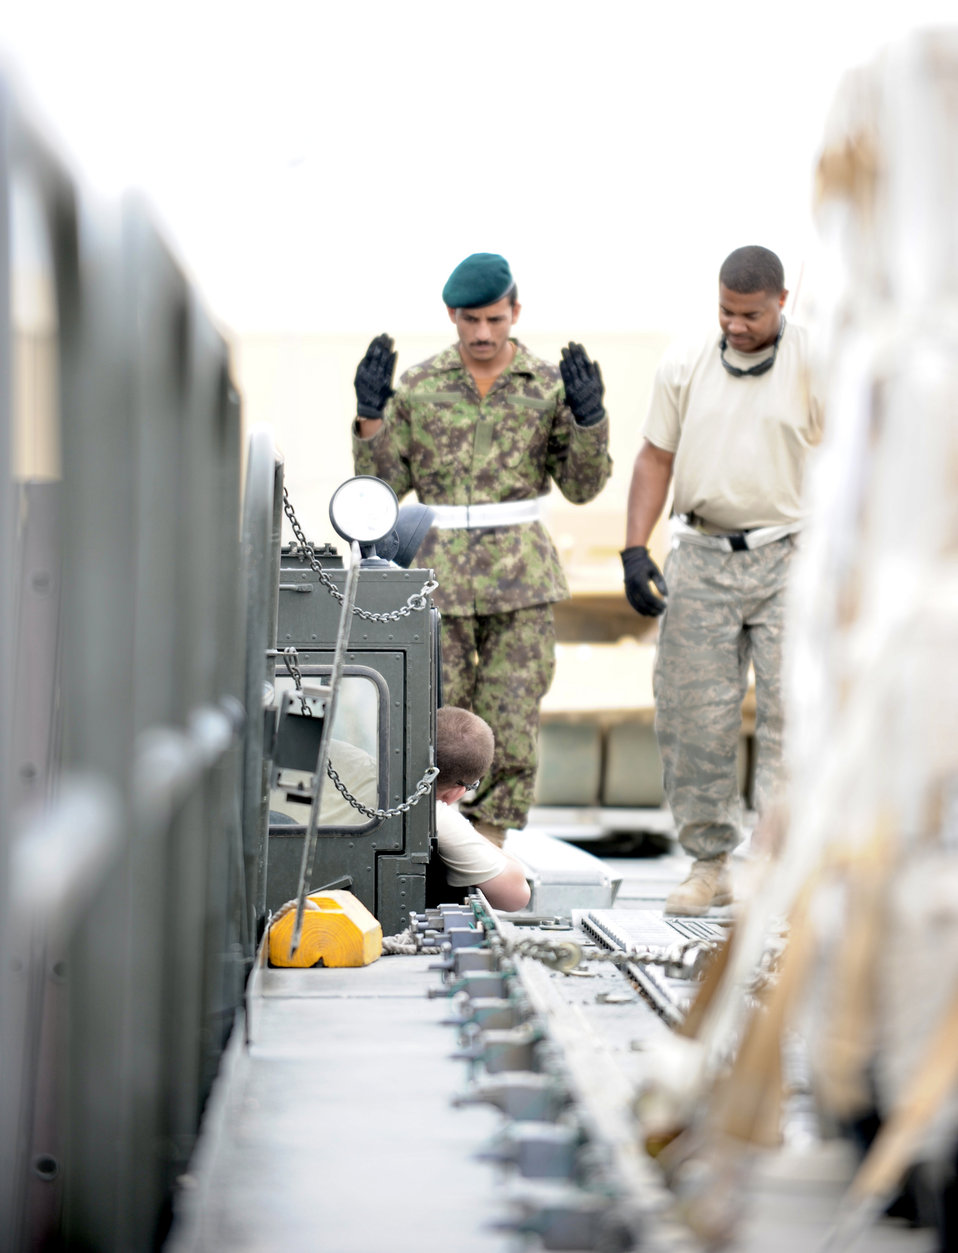 Afghan aerial porters visit Bagram, learn to supply the fight more efficiently